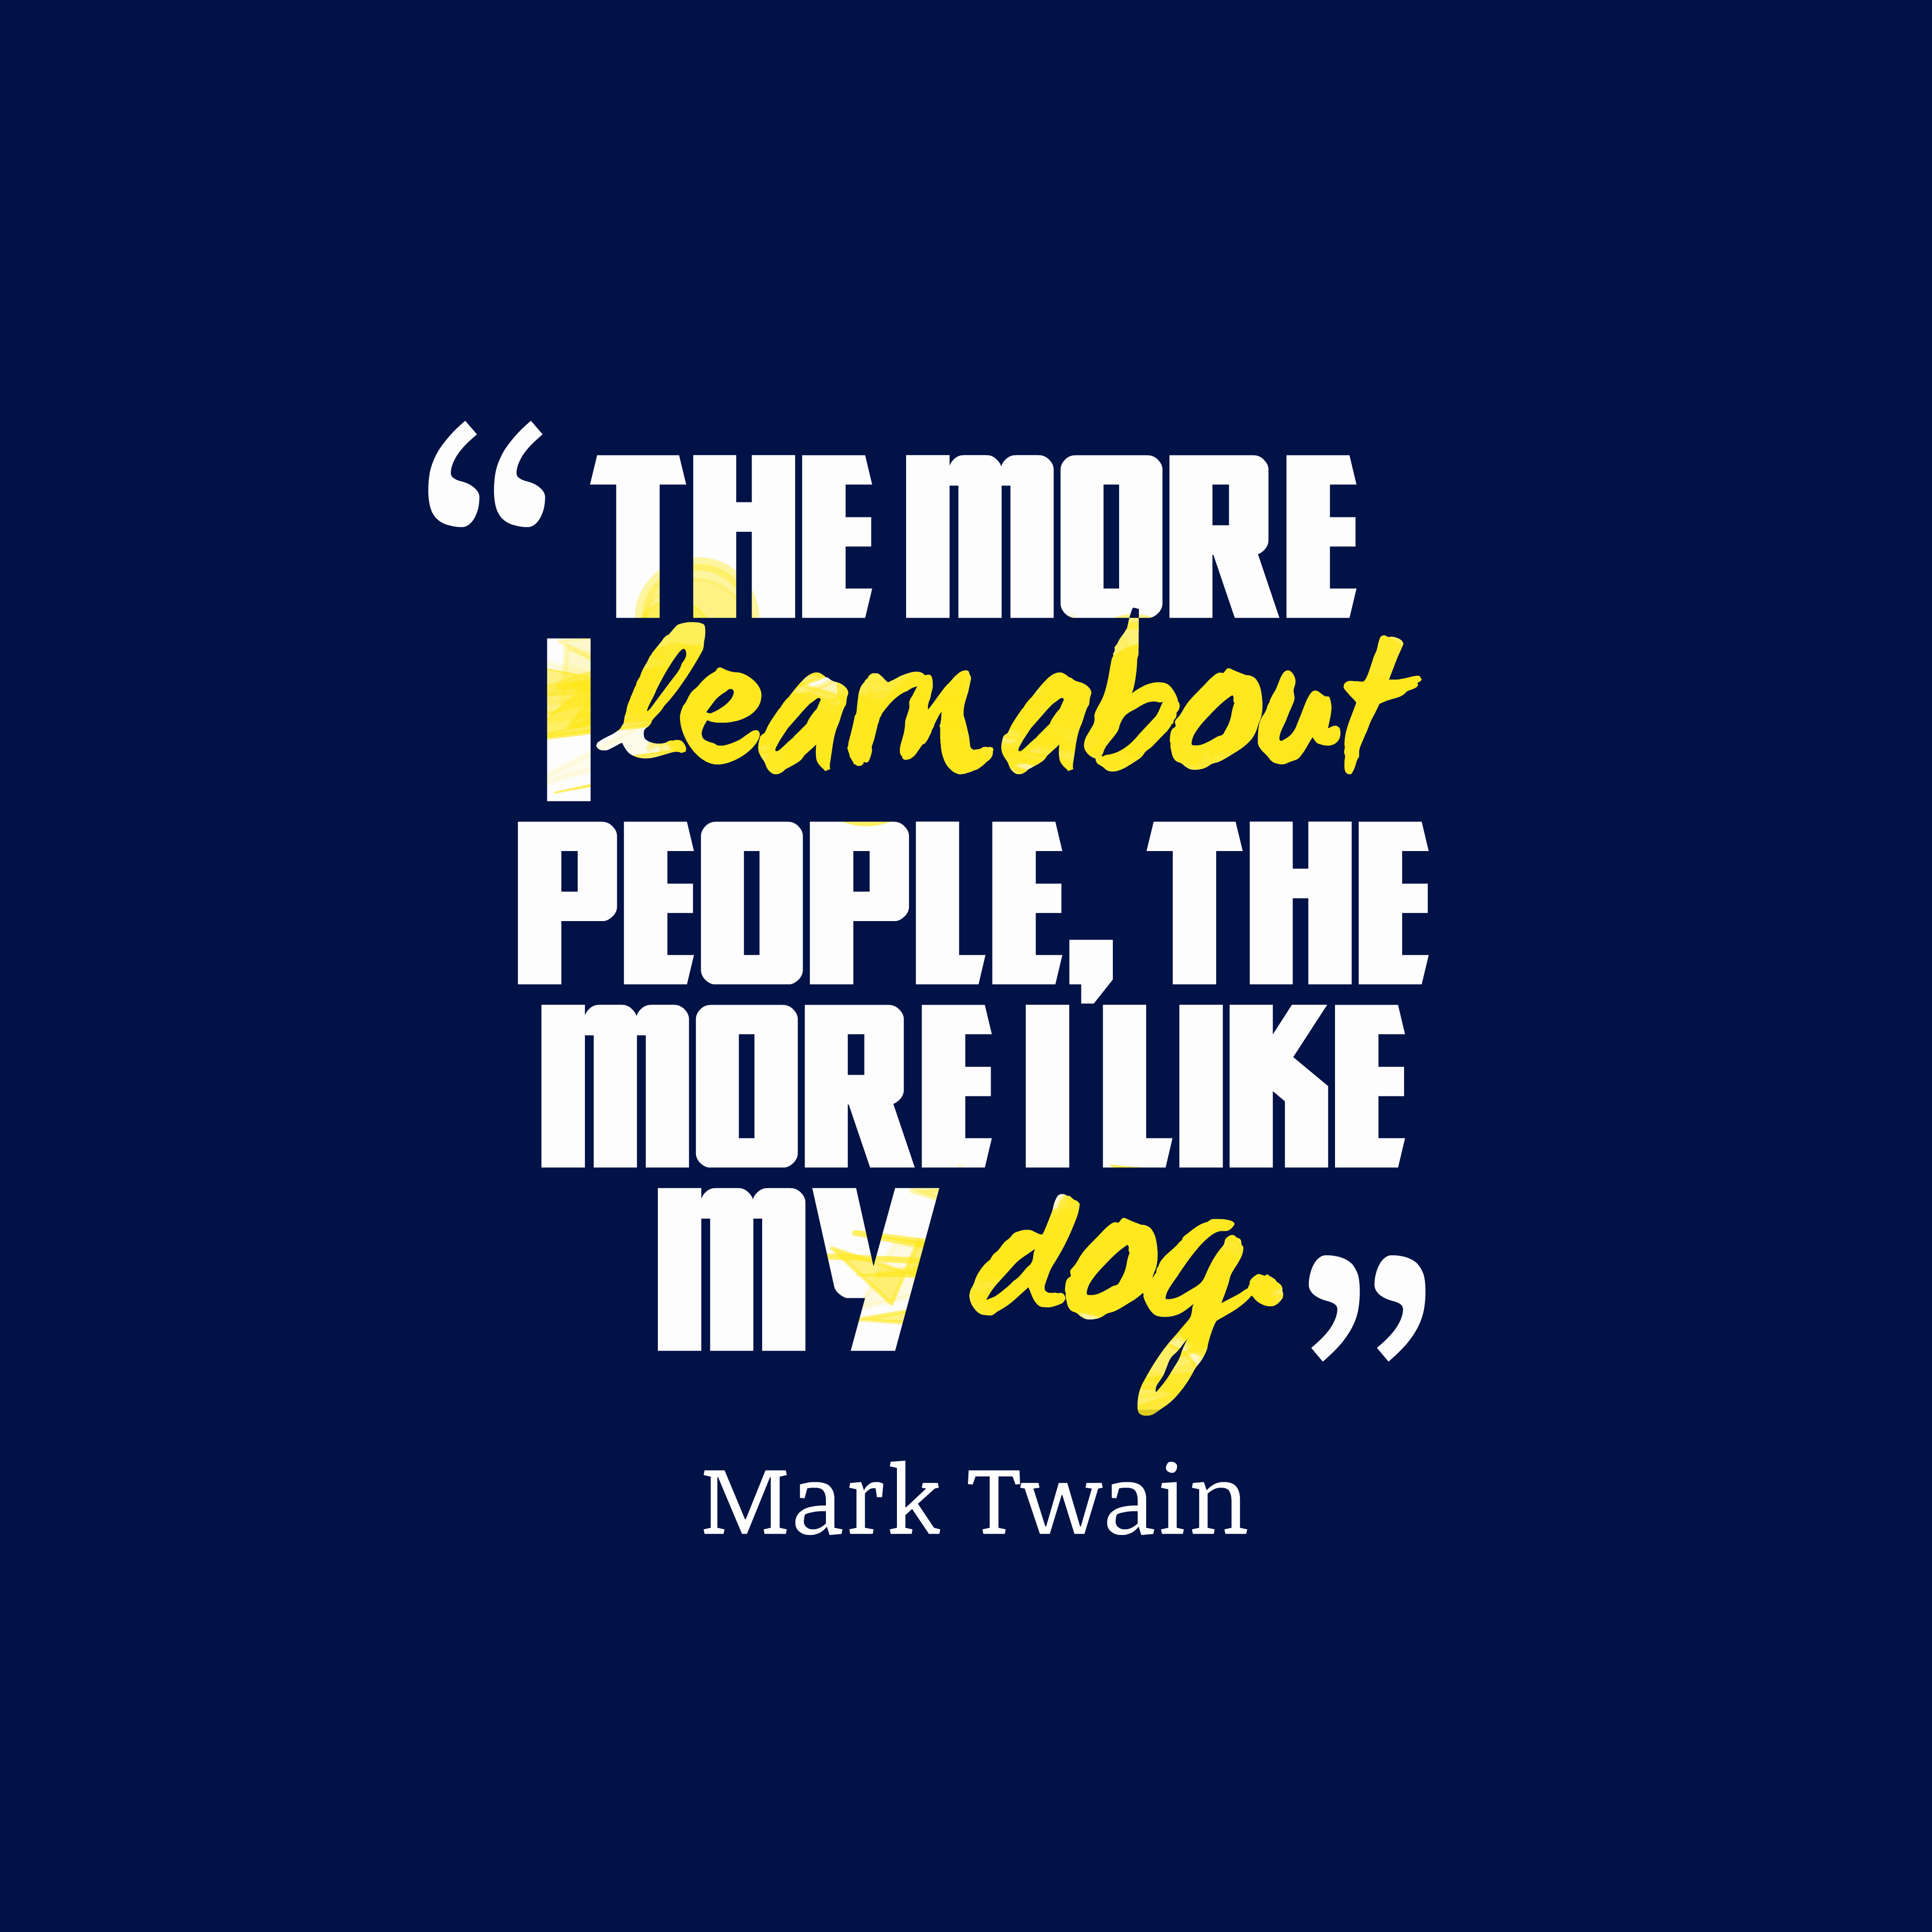 Quotes image of The more i learn about people, the more i like my dog.